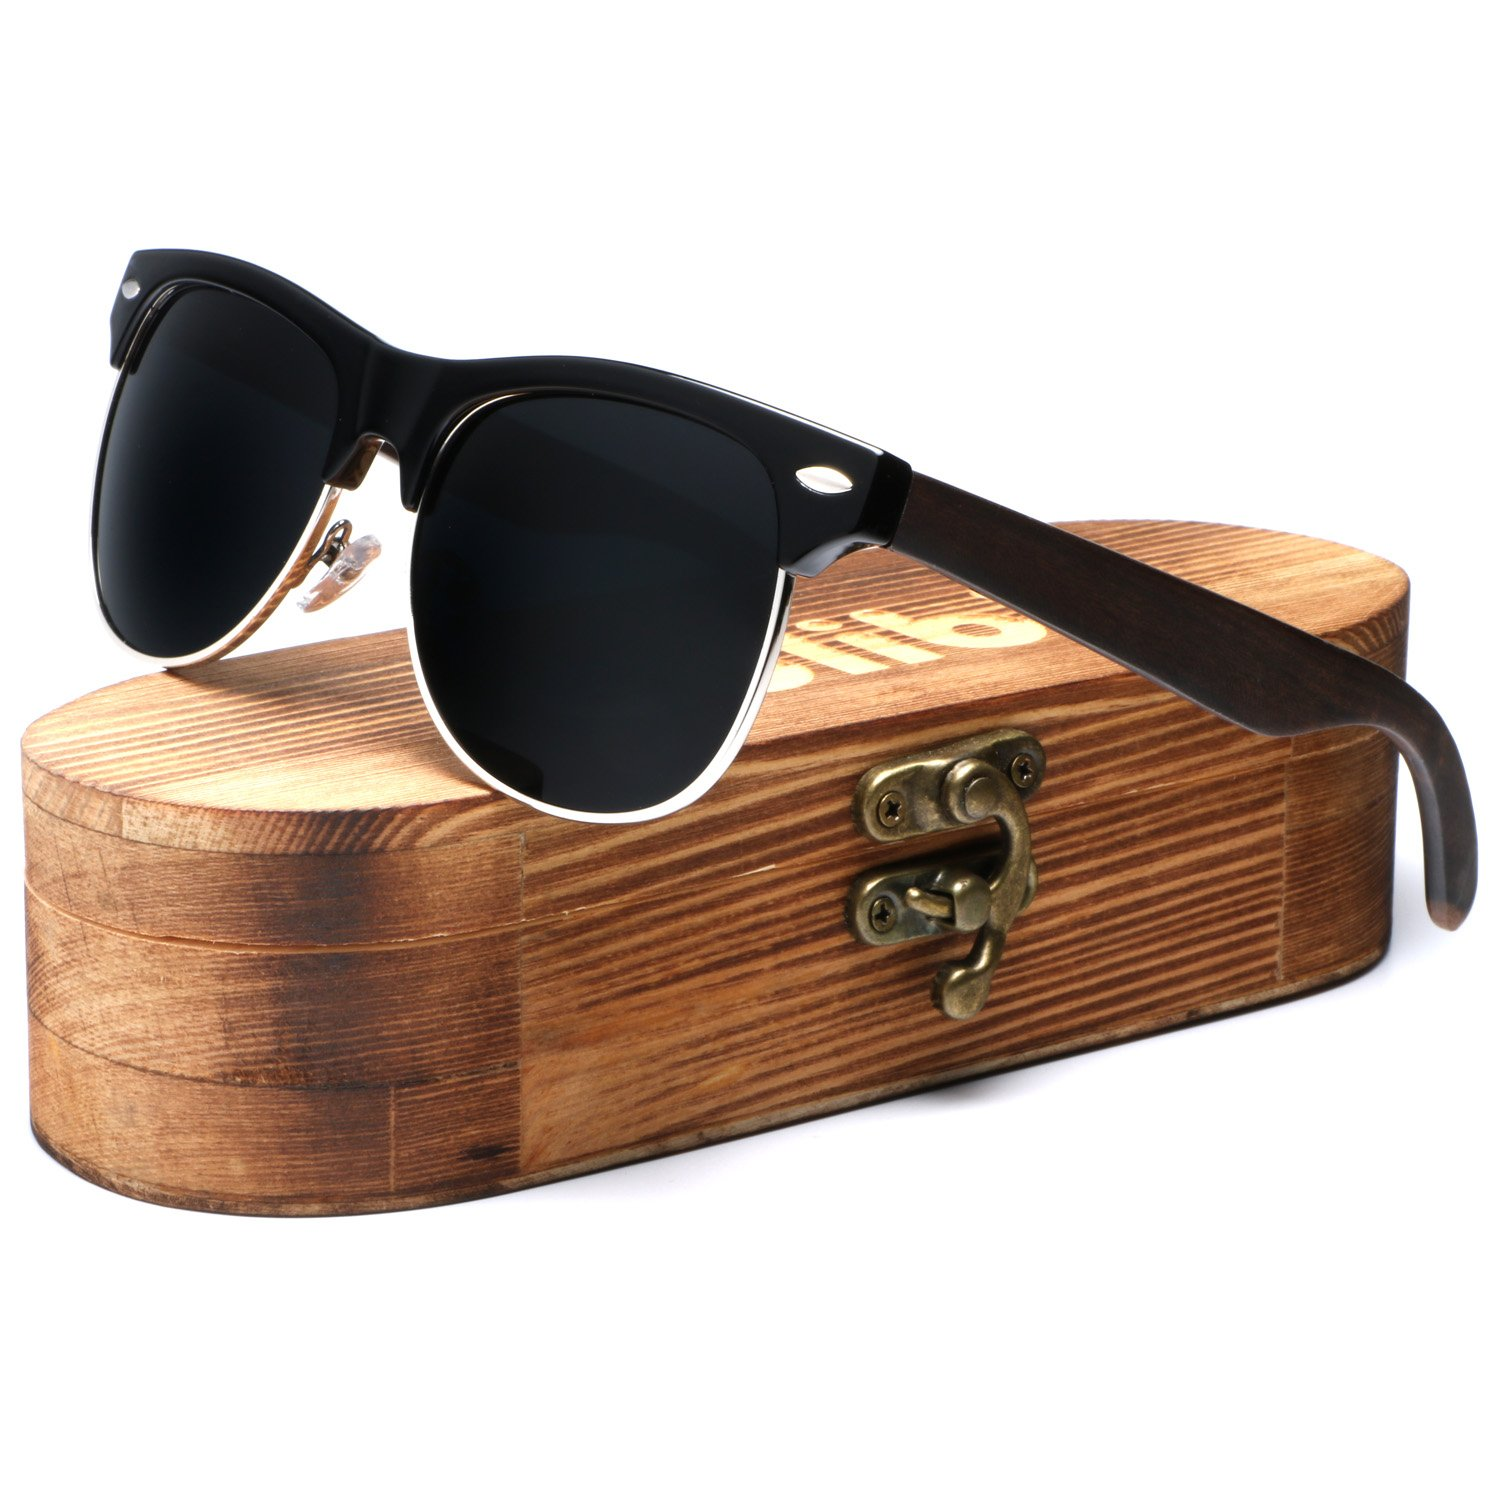 Ablibi Bamboo Wood Semi Rimless Sunglasses with Polarized Lenses in Original Boxes (Ebony, Grey) by ABLIBI